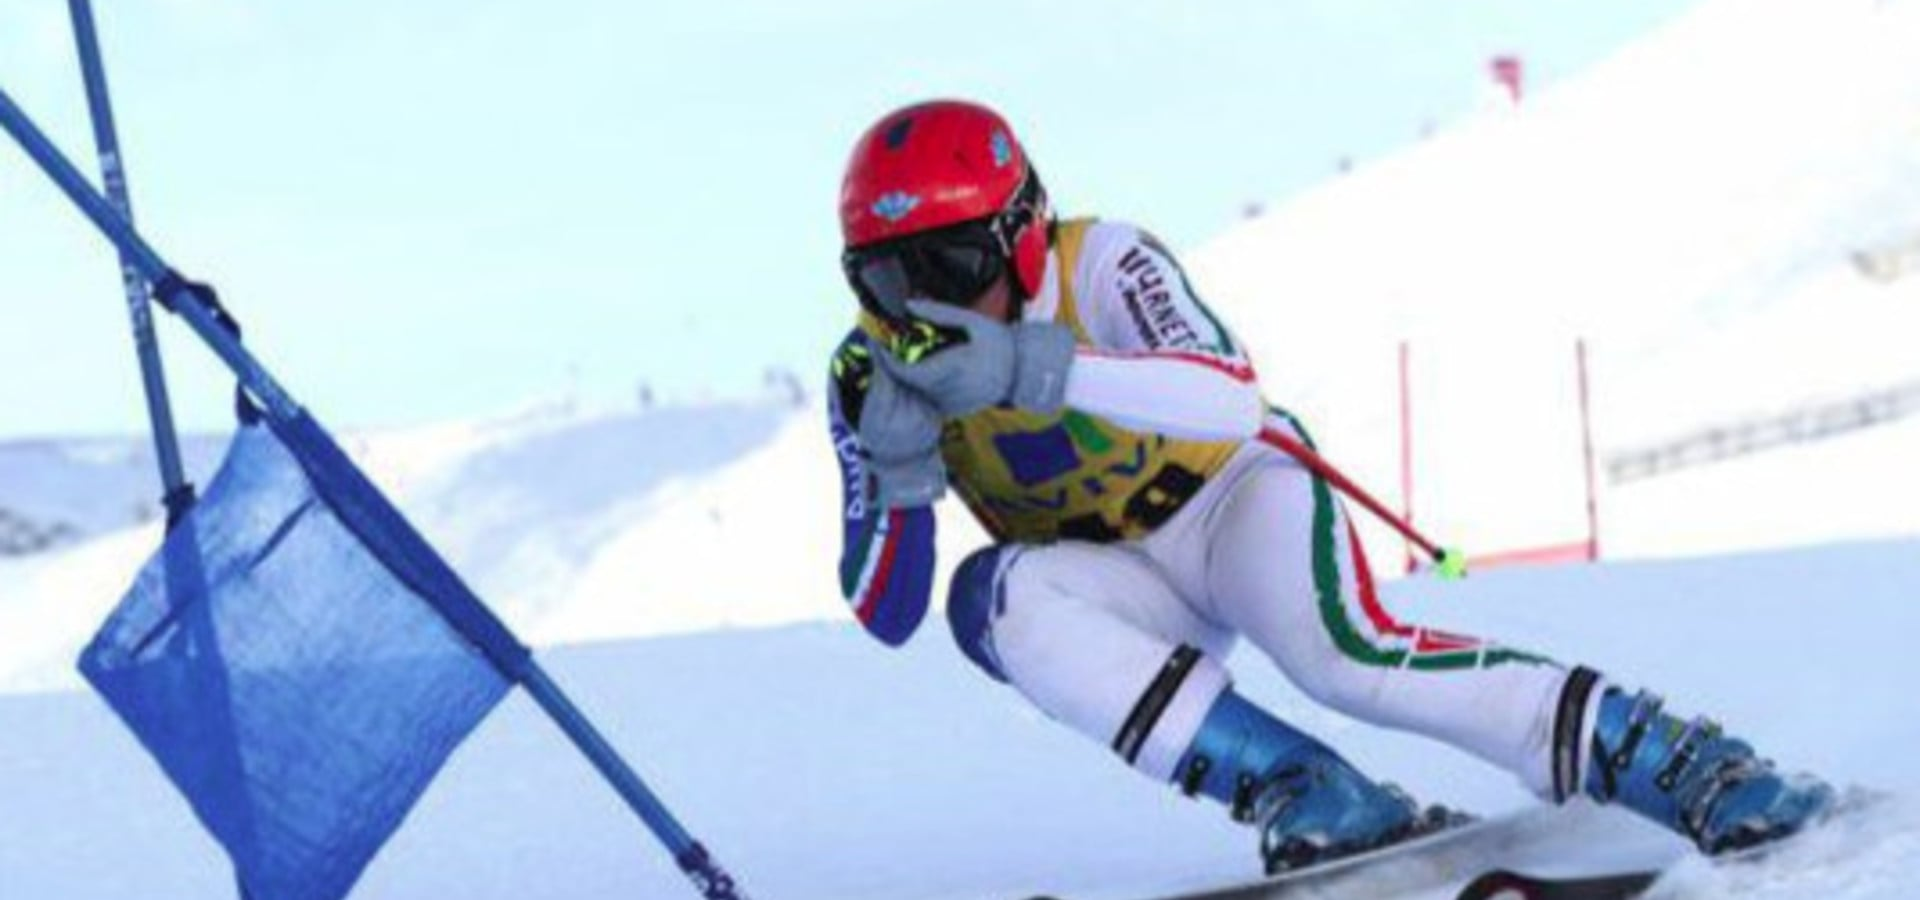 05.02.17 GP Ski Race Giant Slalom